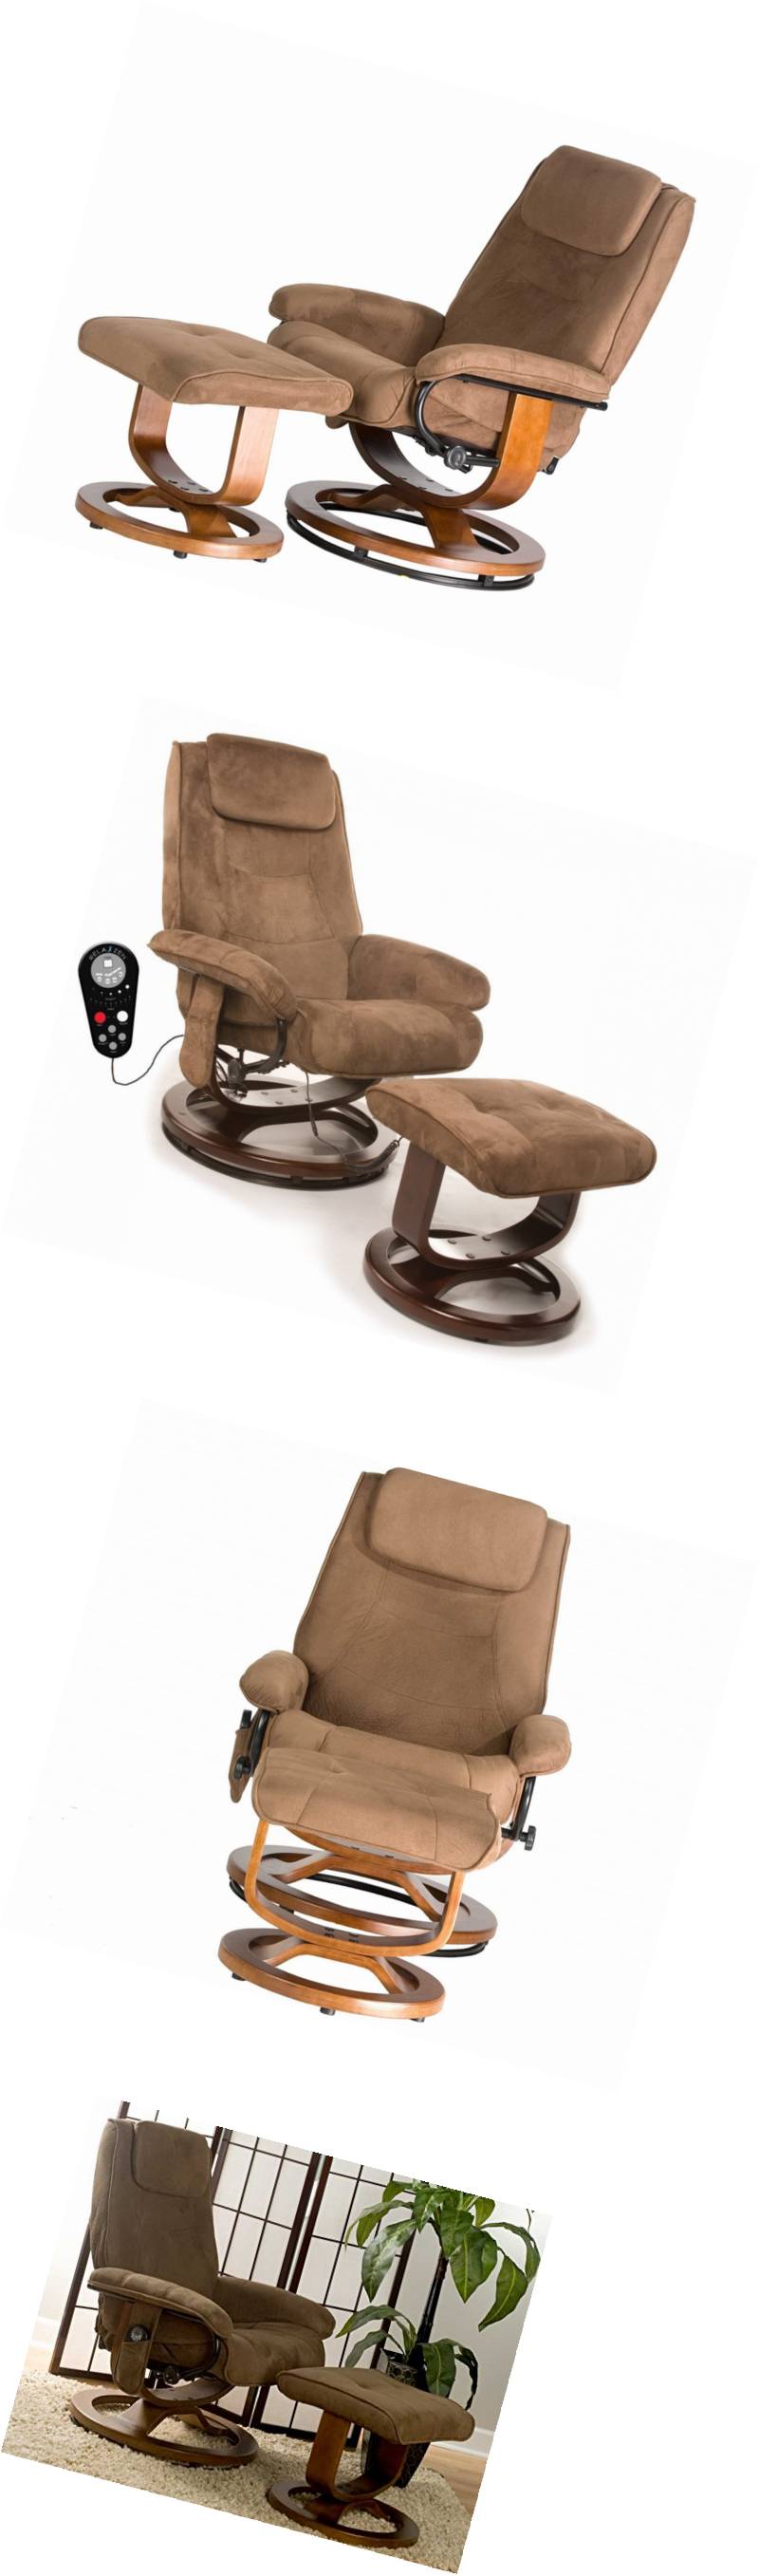 Electric Massage Chairs Leisure Recliner Chair With 8 Motor